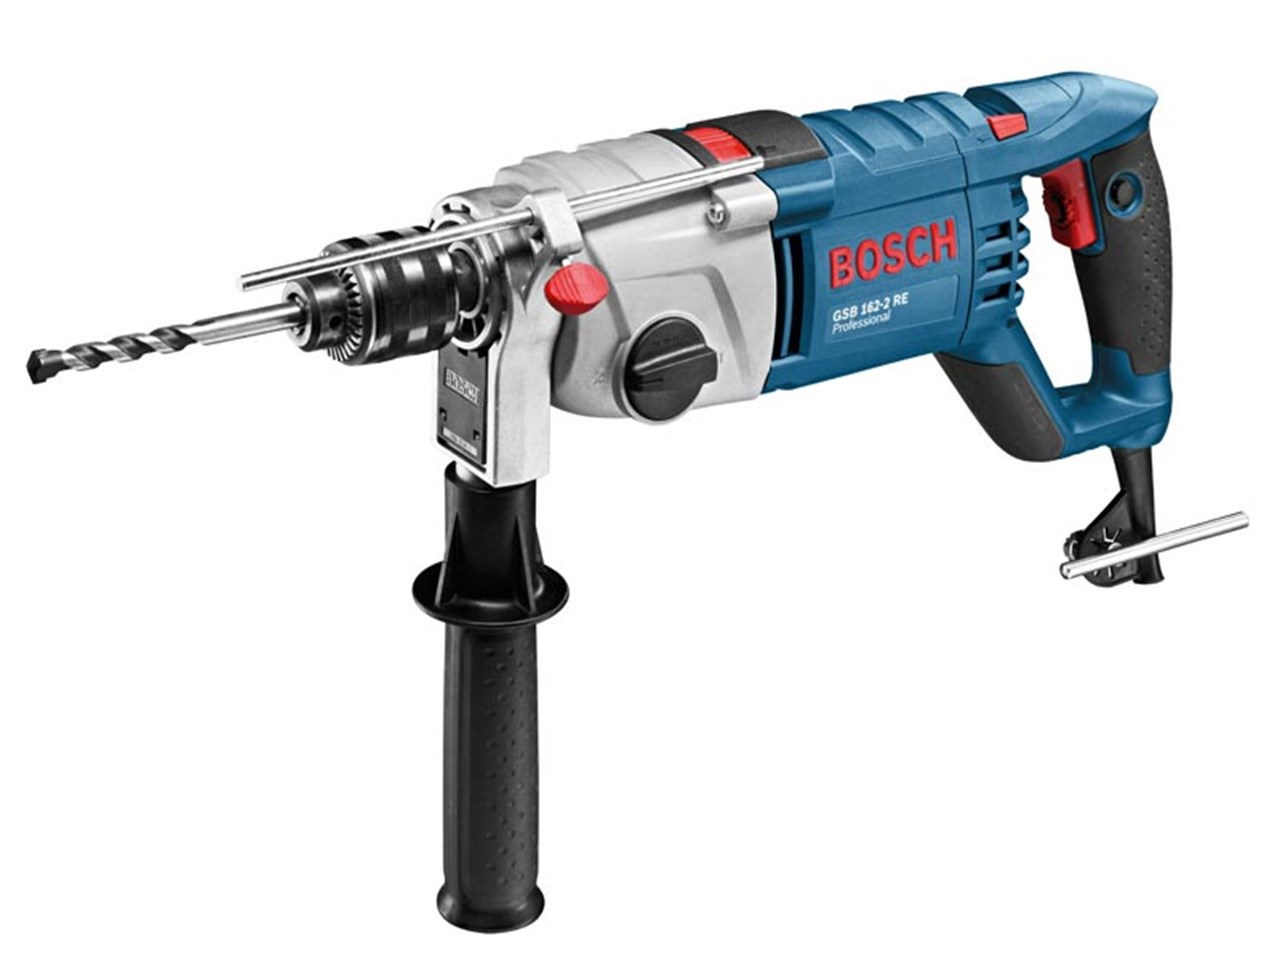 bosch gsb1622re 110v 1500w 2 speed impact drill. Black Bedroom Furniture Sets. Home Design Ideas